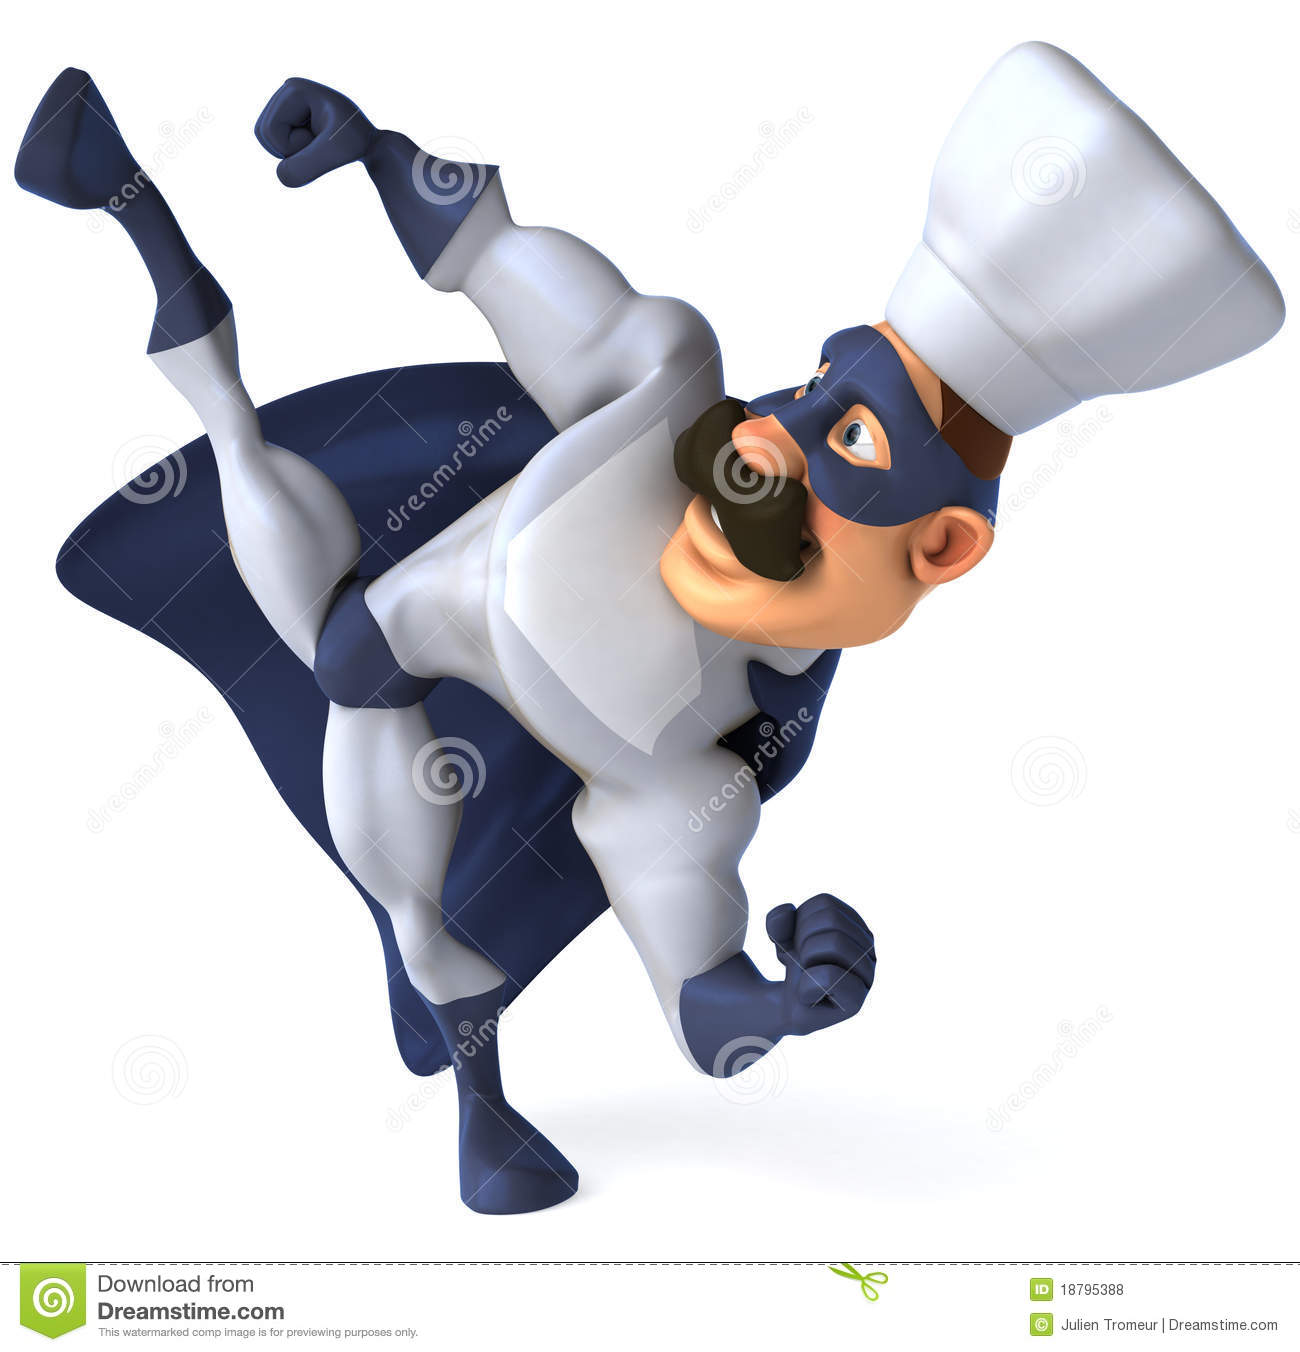 Super chef royalty free stock photos image 18795388 - Super chef 2000 ...